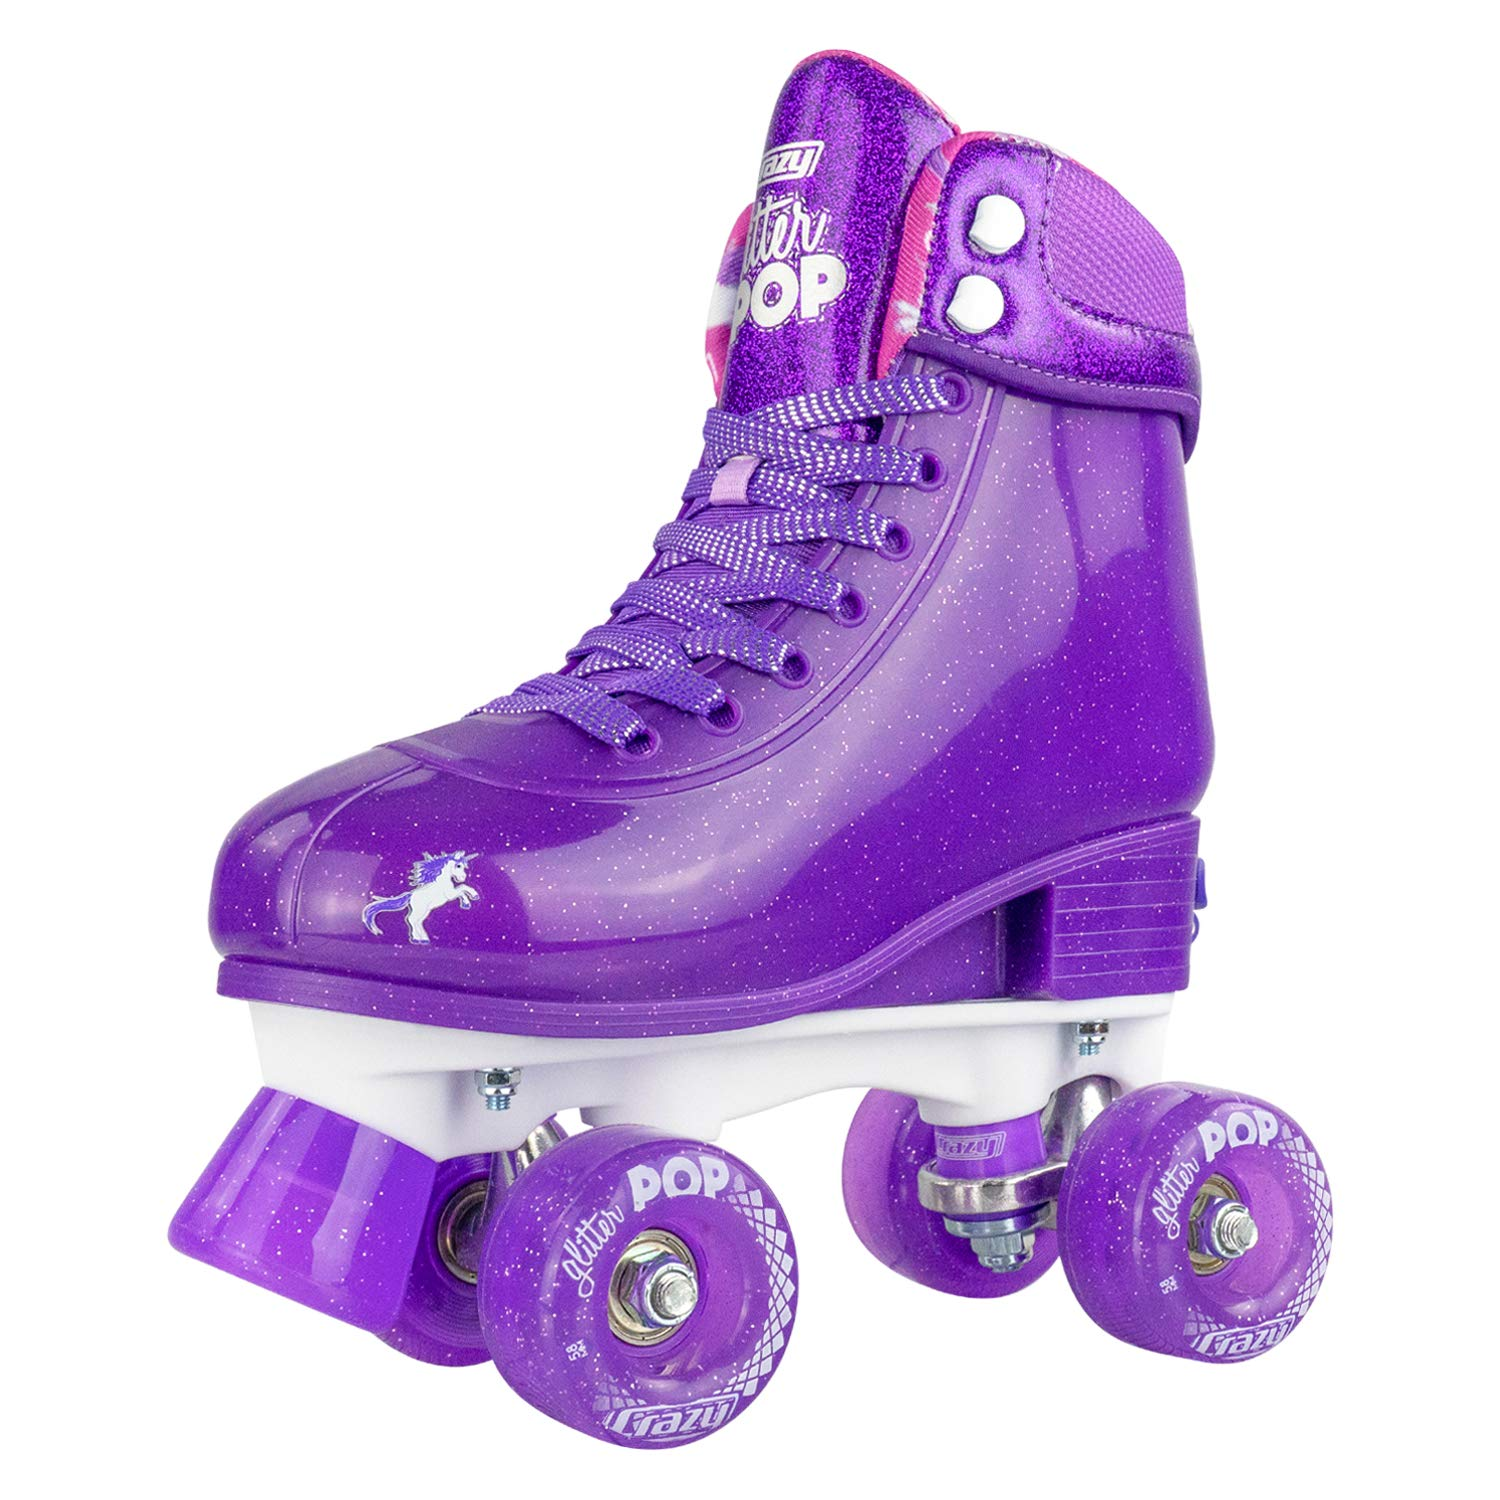 Crazy Skates Adjustable Roller Skates for Girls and Boys - Glitter Pop Collection - Purple (Sizes jr12-2) by Crazy Skates